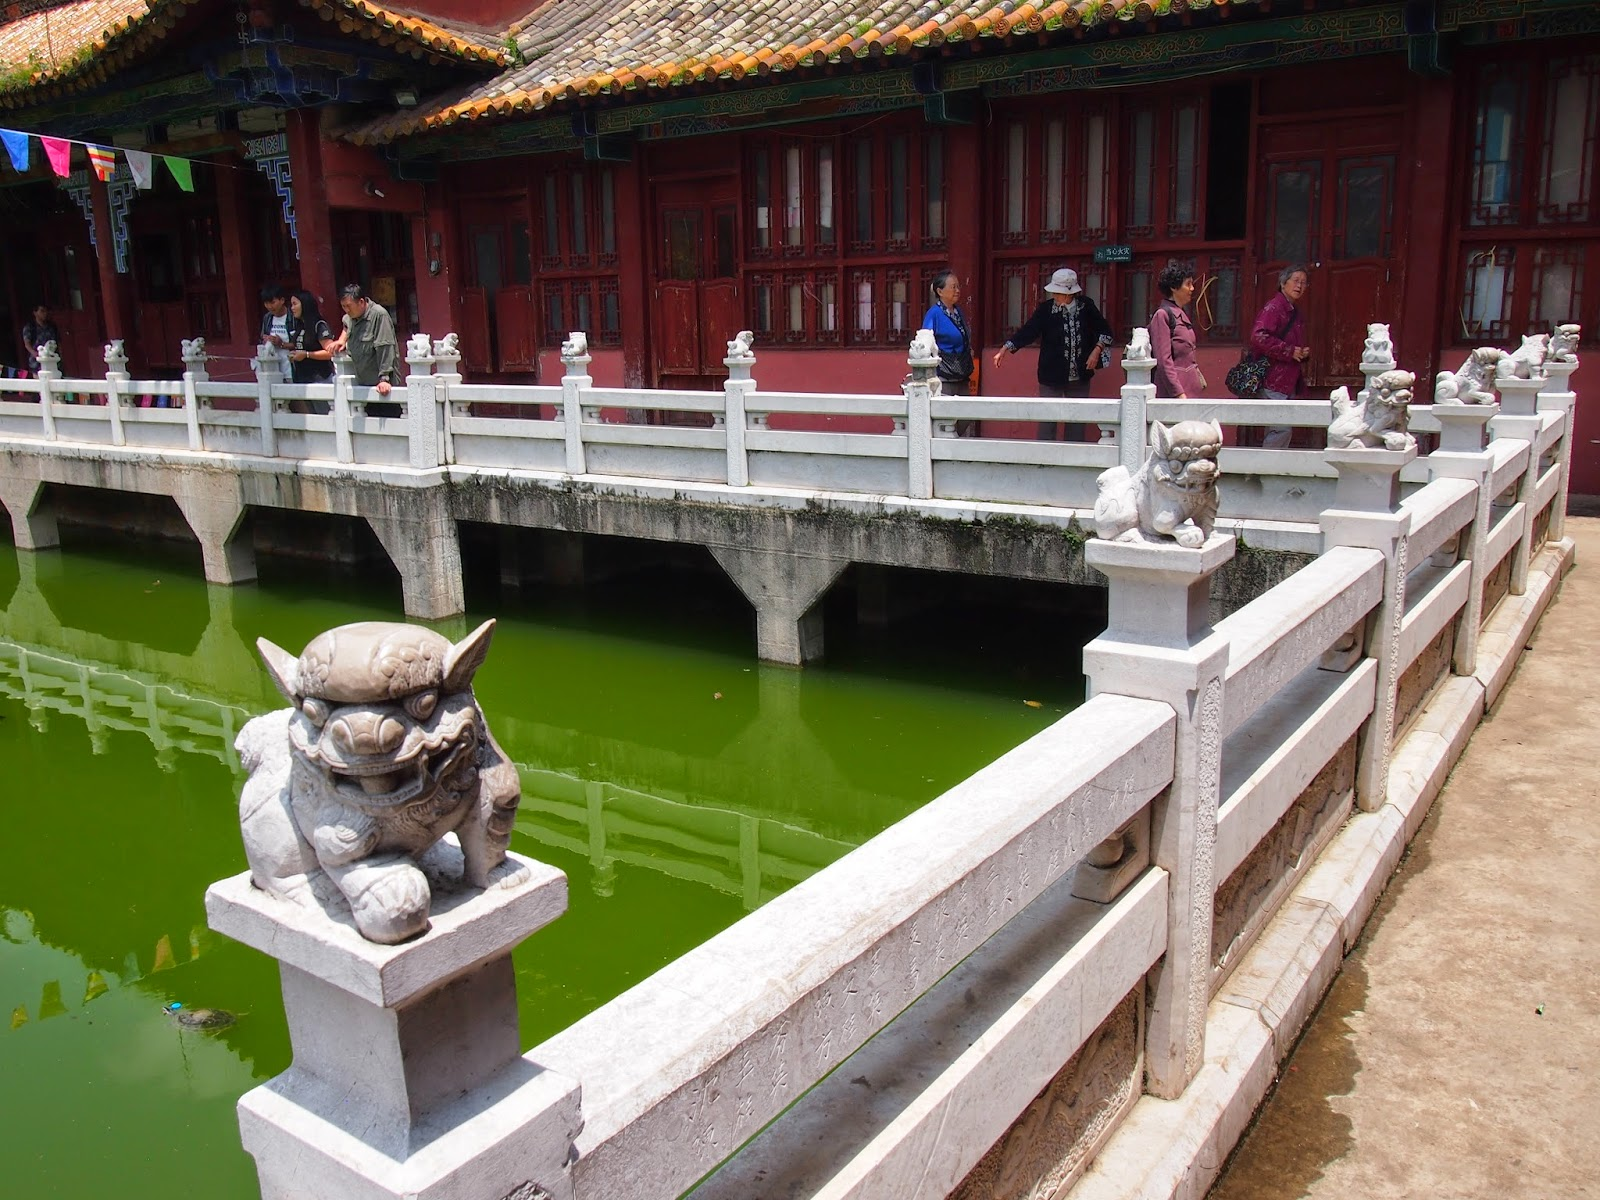 The bright green water and lion statues at the Yuan Tong Temple